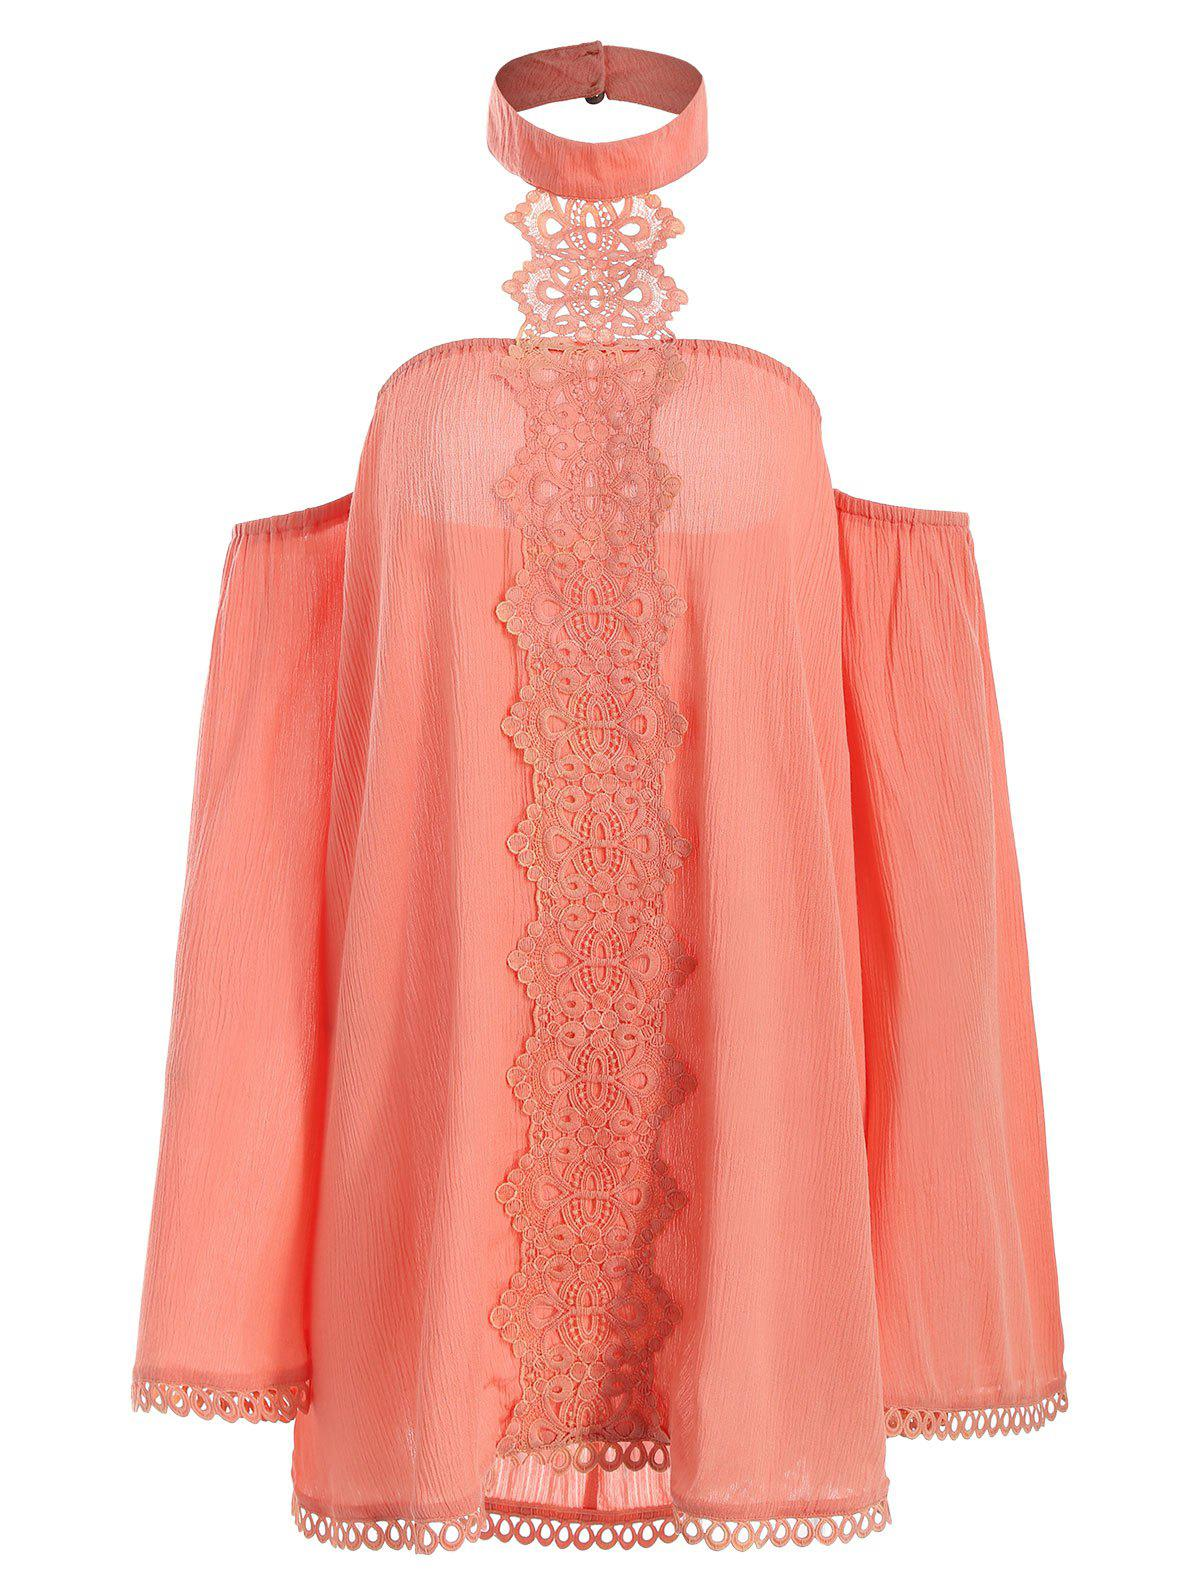 Halter Lace Insert Blouse - ORANGE XL